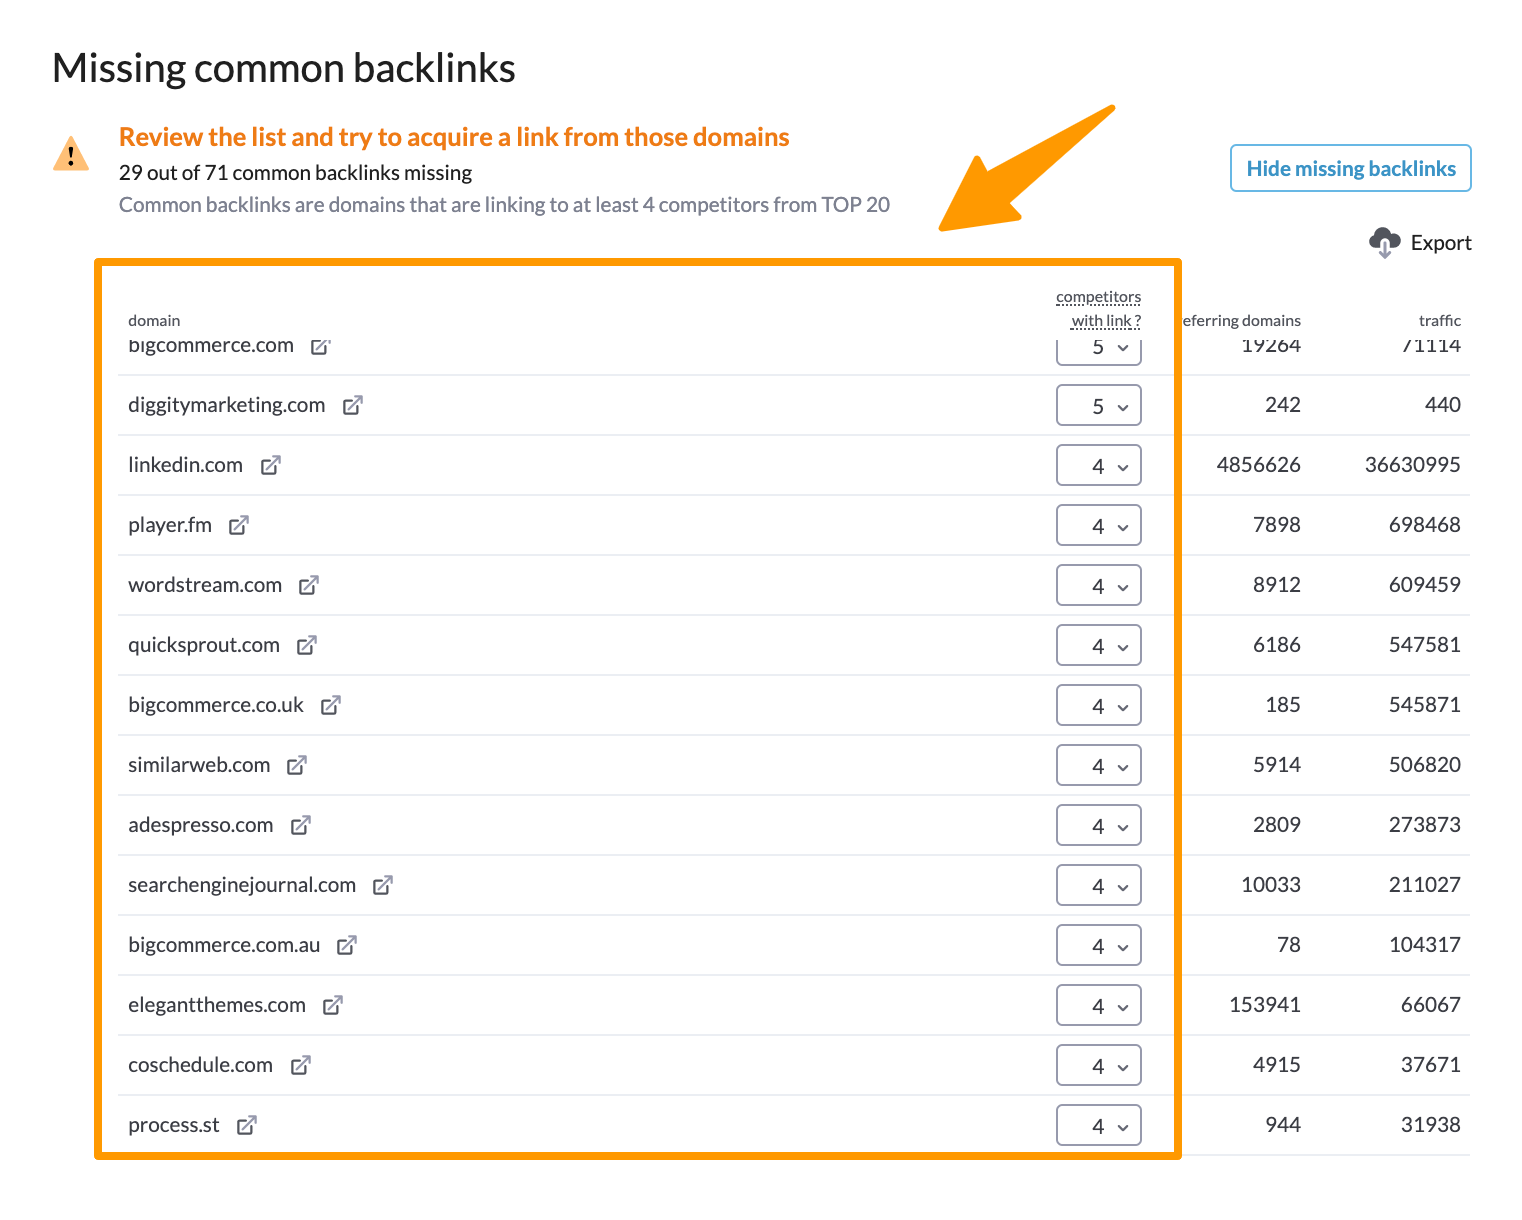 missing common backlinks